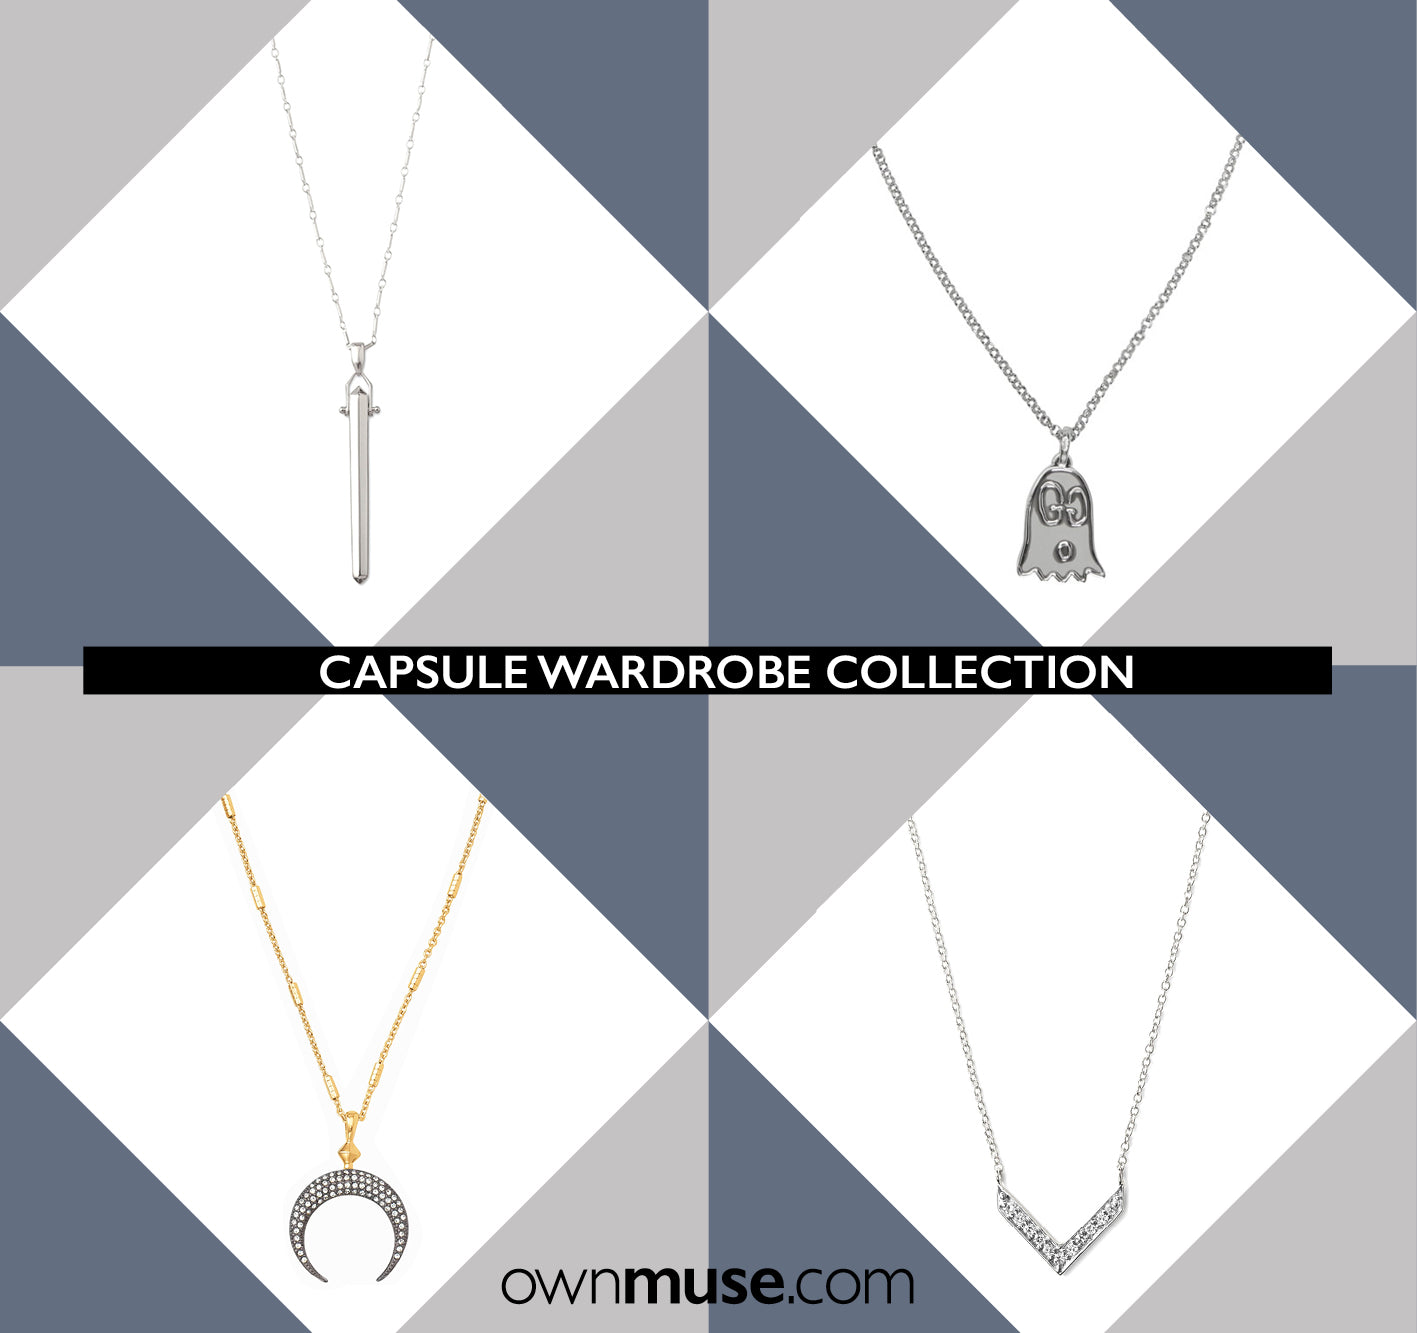 Capsule wardrobe collection - Silver pendant necklaces